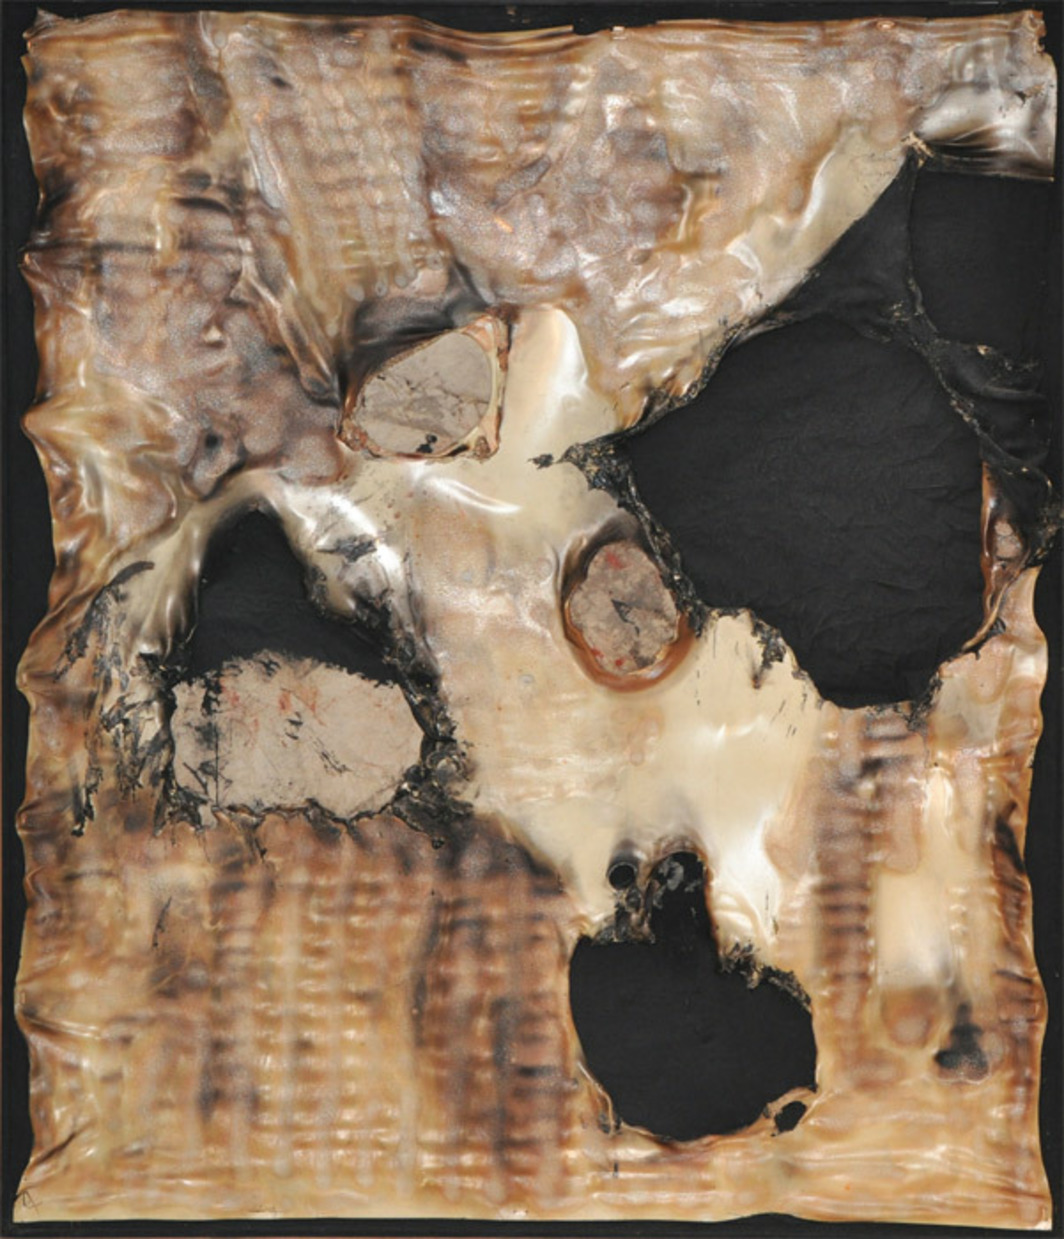 "Alberto Burri, Combustione Plastica (Plastic Combustion), 1958, burnt plastic and acrylic on canvas, 38 1/2 x 33""."